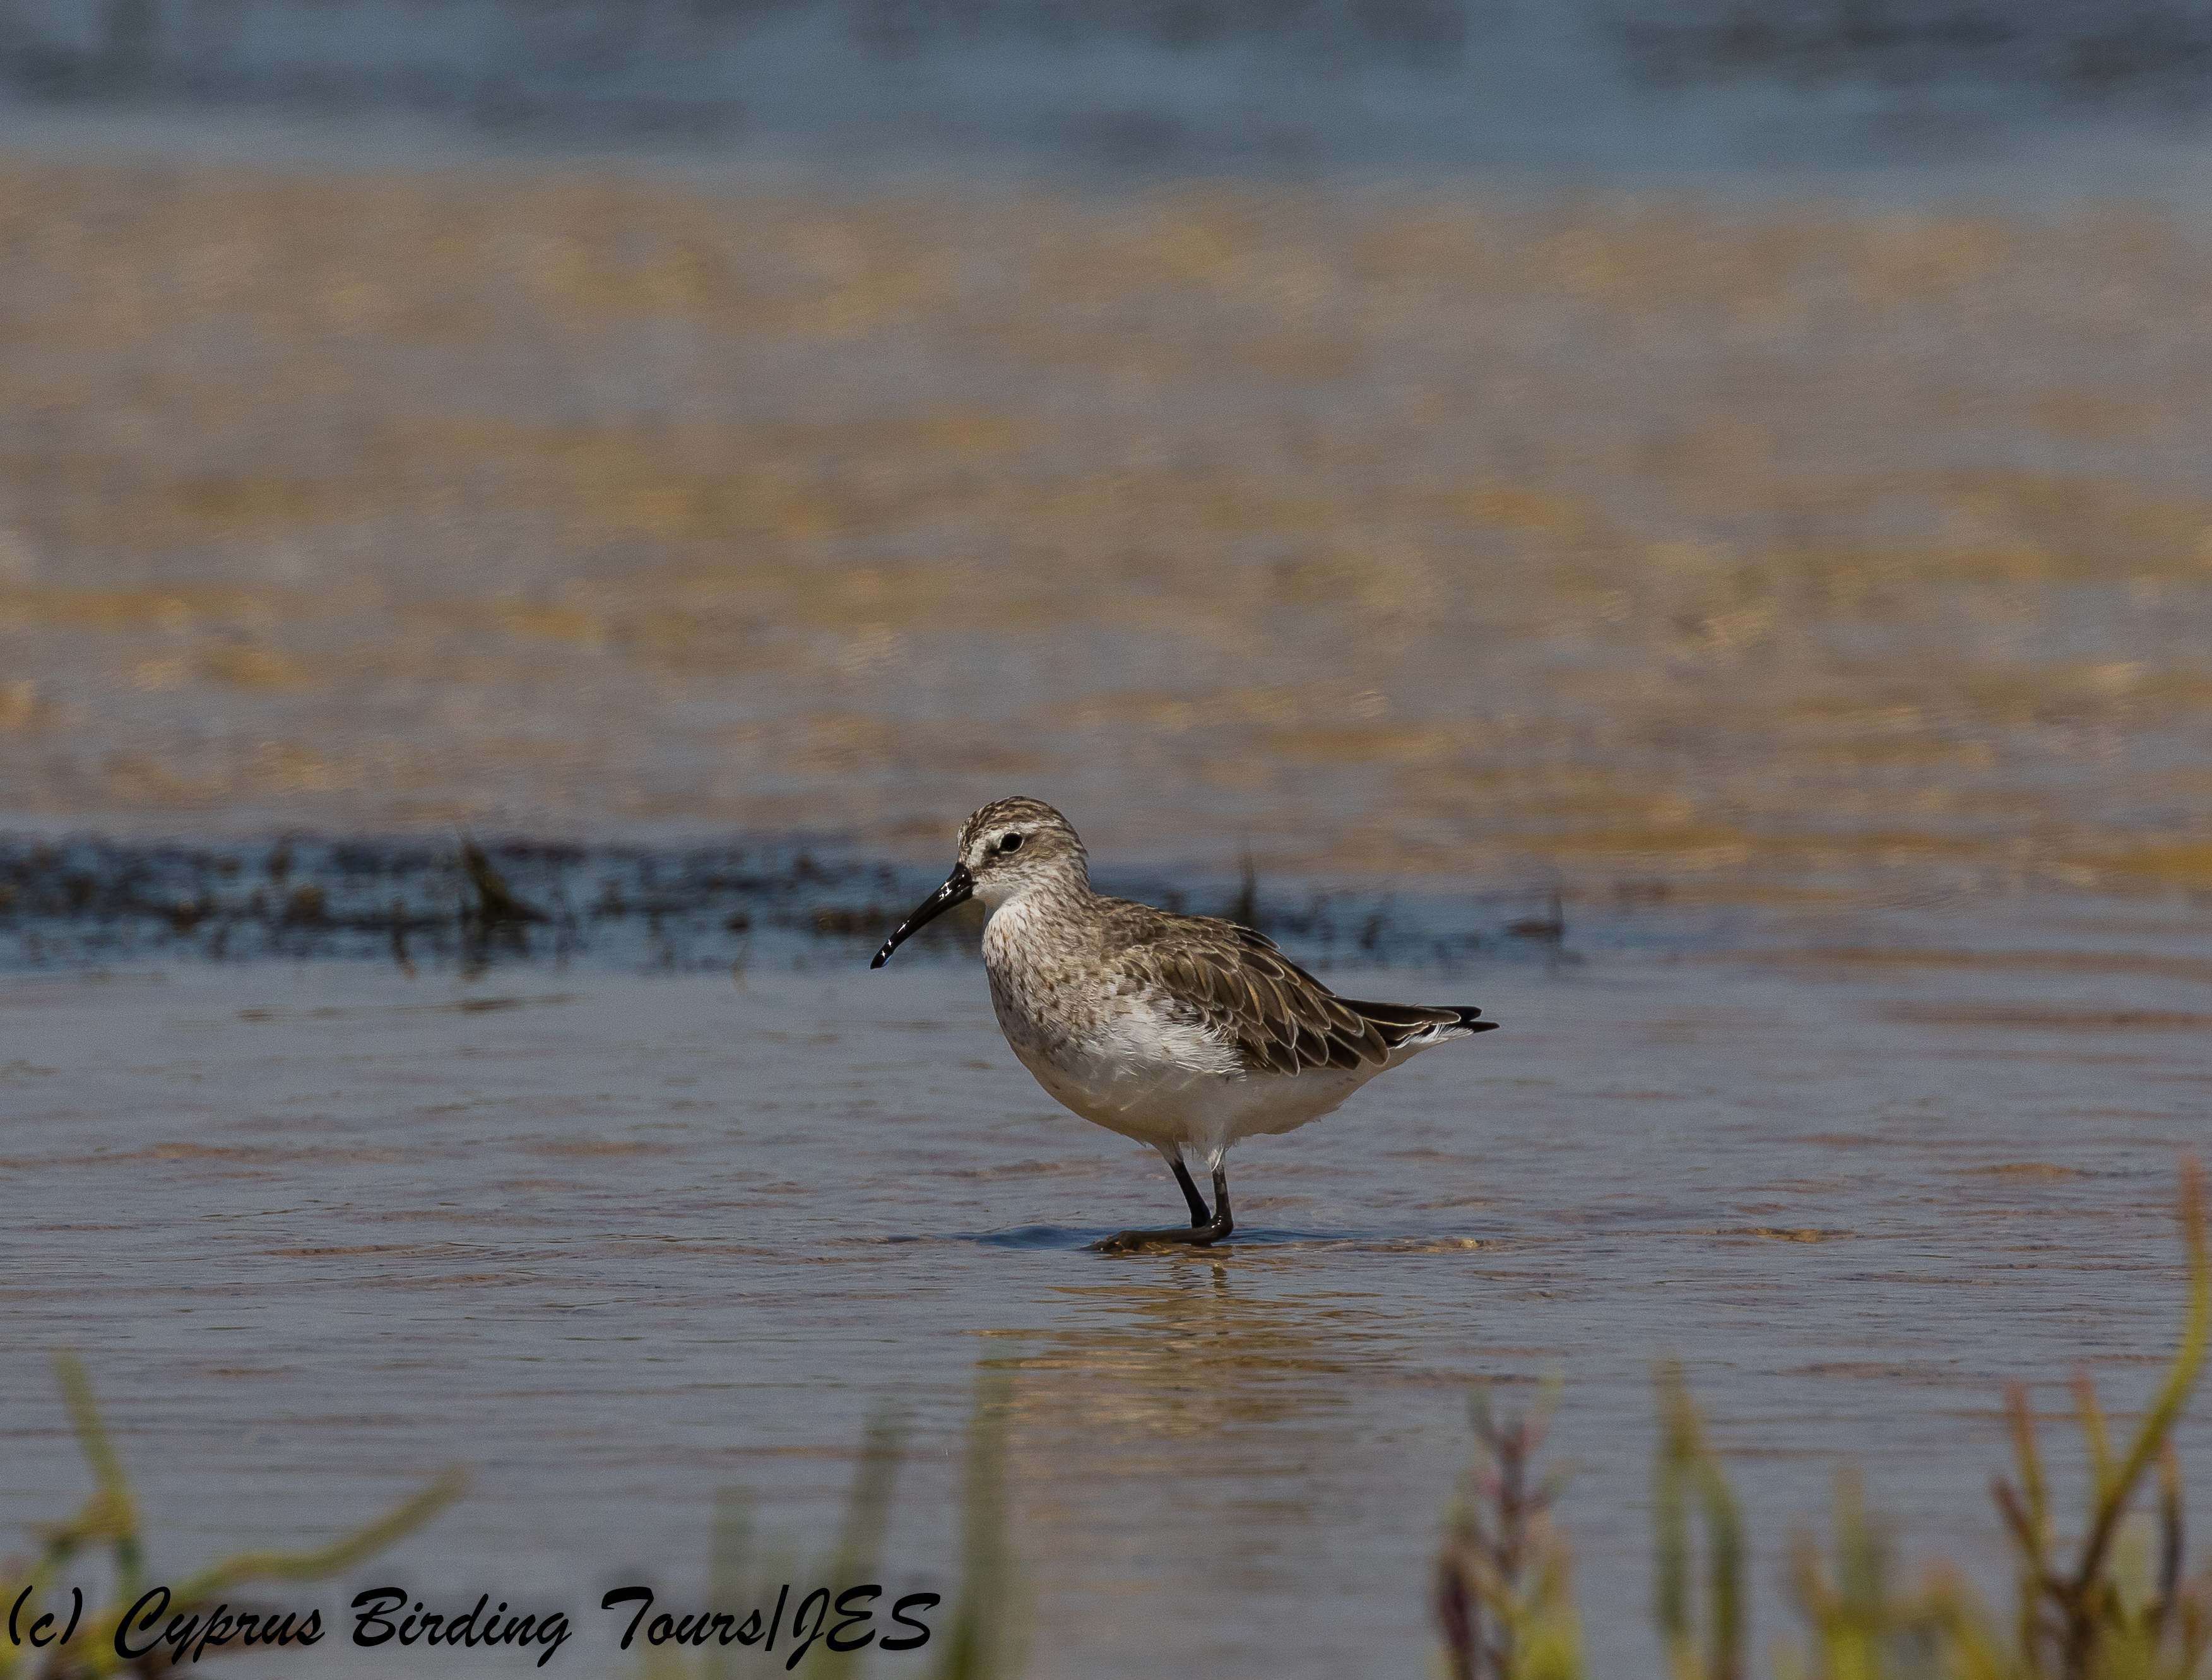 Curlew Sandpiper non-breeding plumage, ASL, 6th July 2018 (c) Cyprus Birding Tours